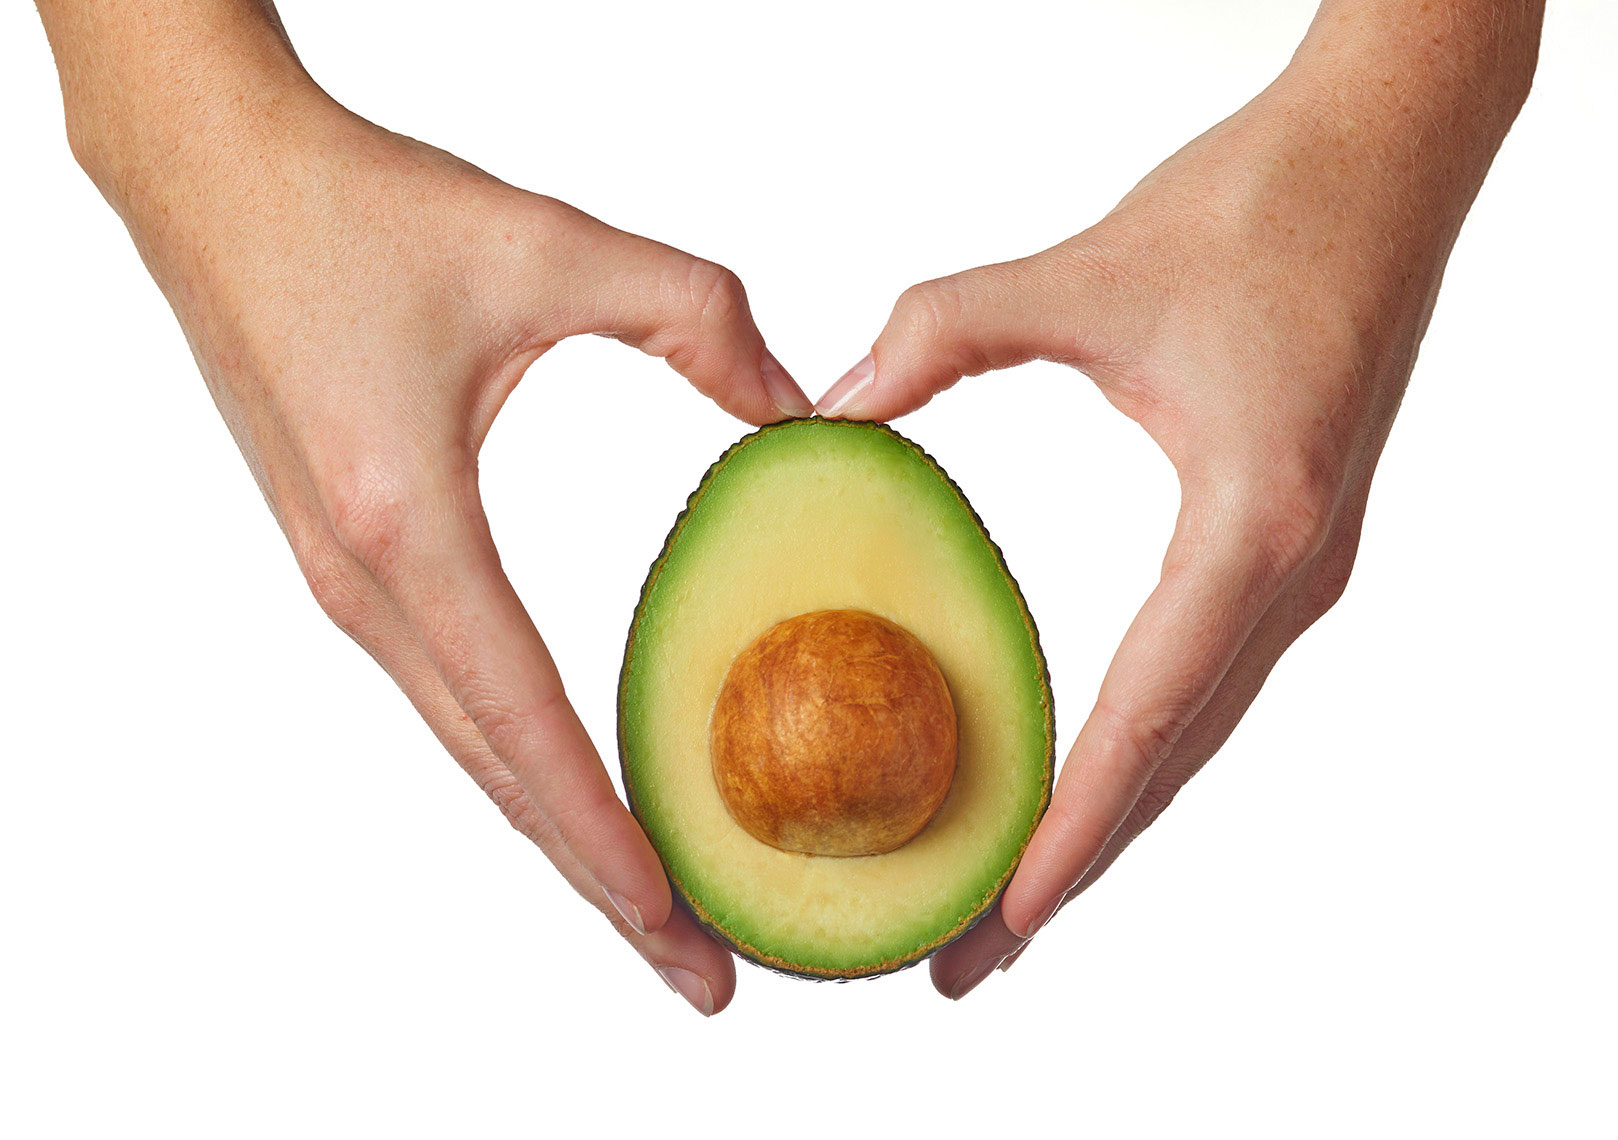 Two-hands-in-the-shape-of-a-heart_holding-half-of-a-cut-avocado-by-Joe-Atlas-food-photography.